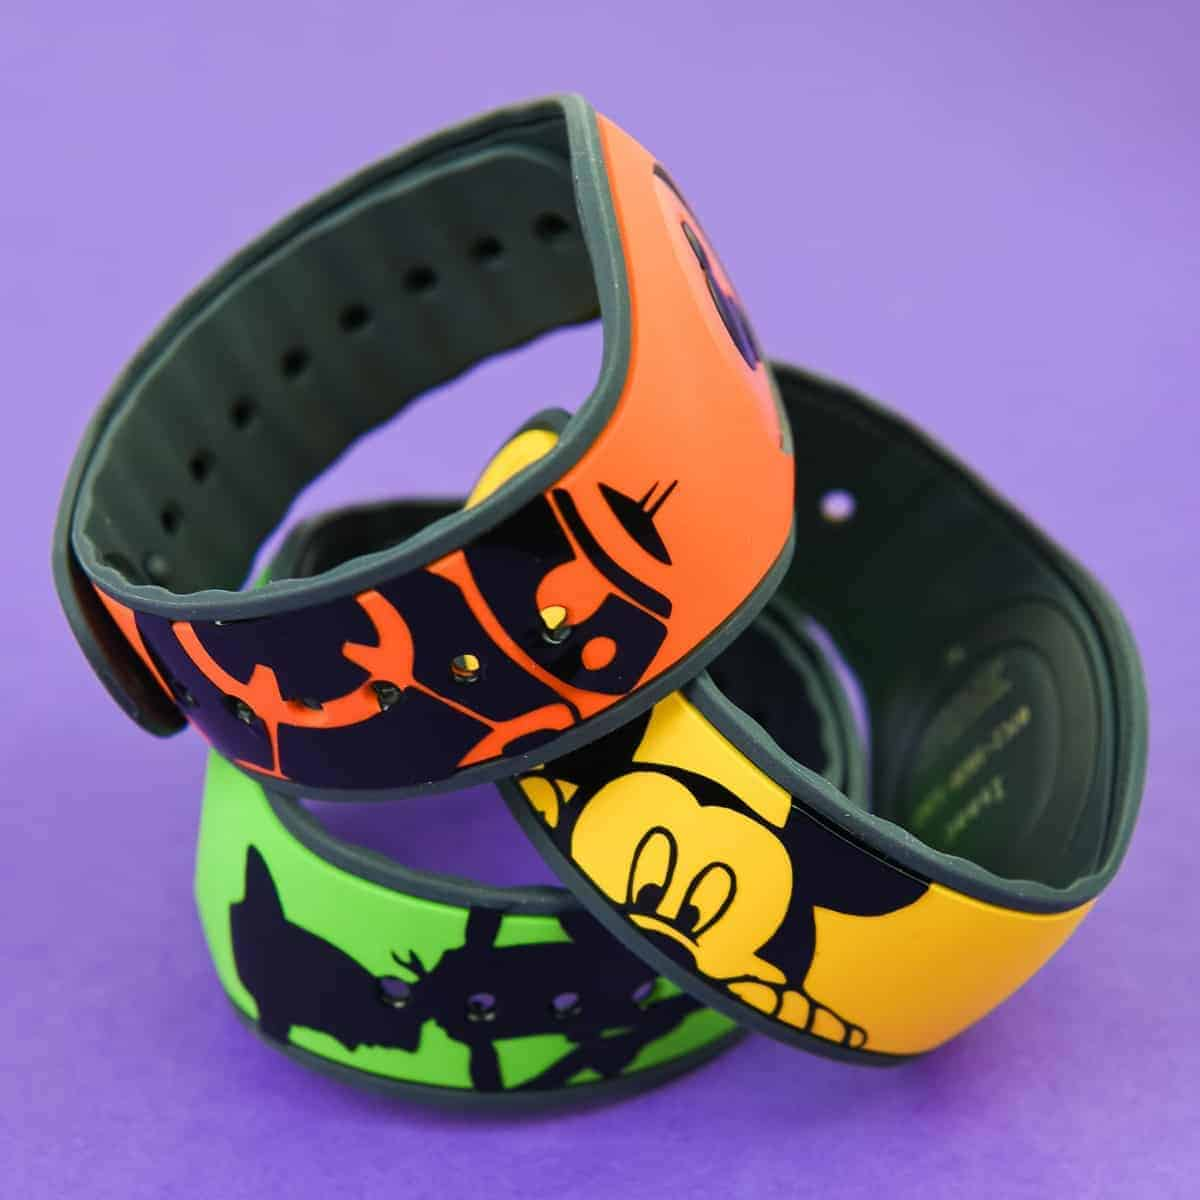 Customize Your Disney Magicbands with Vinyl